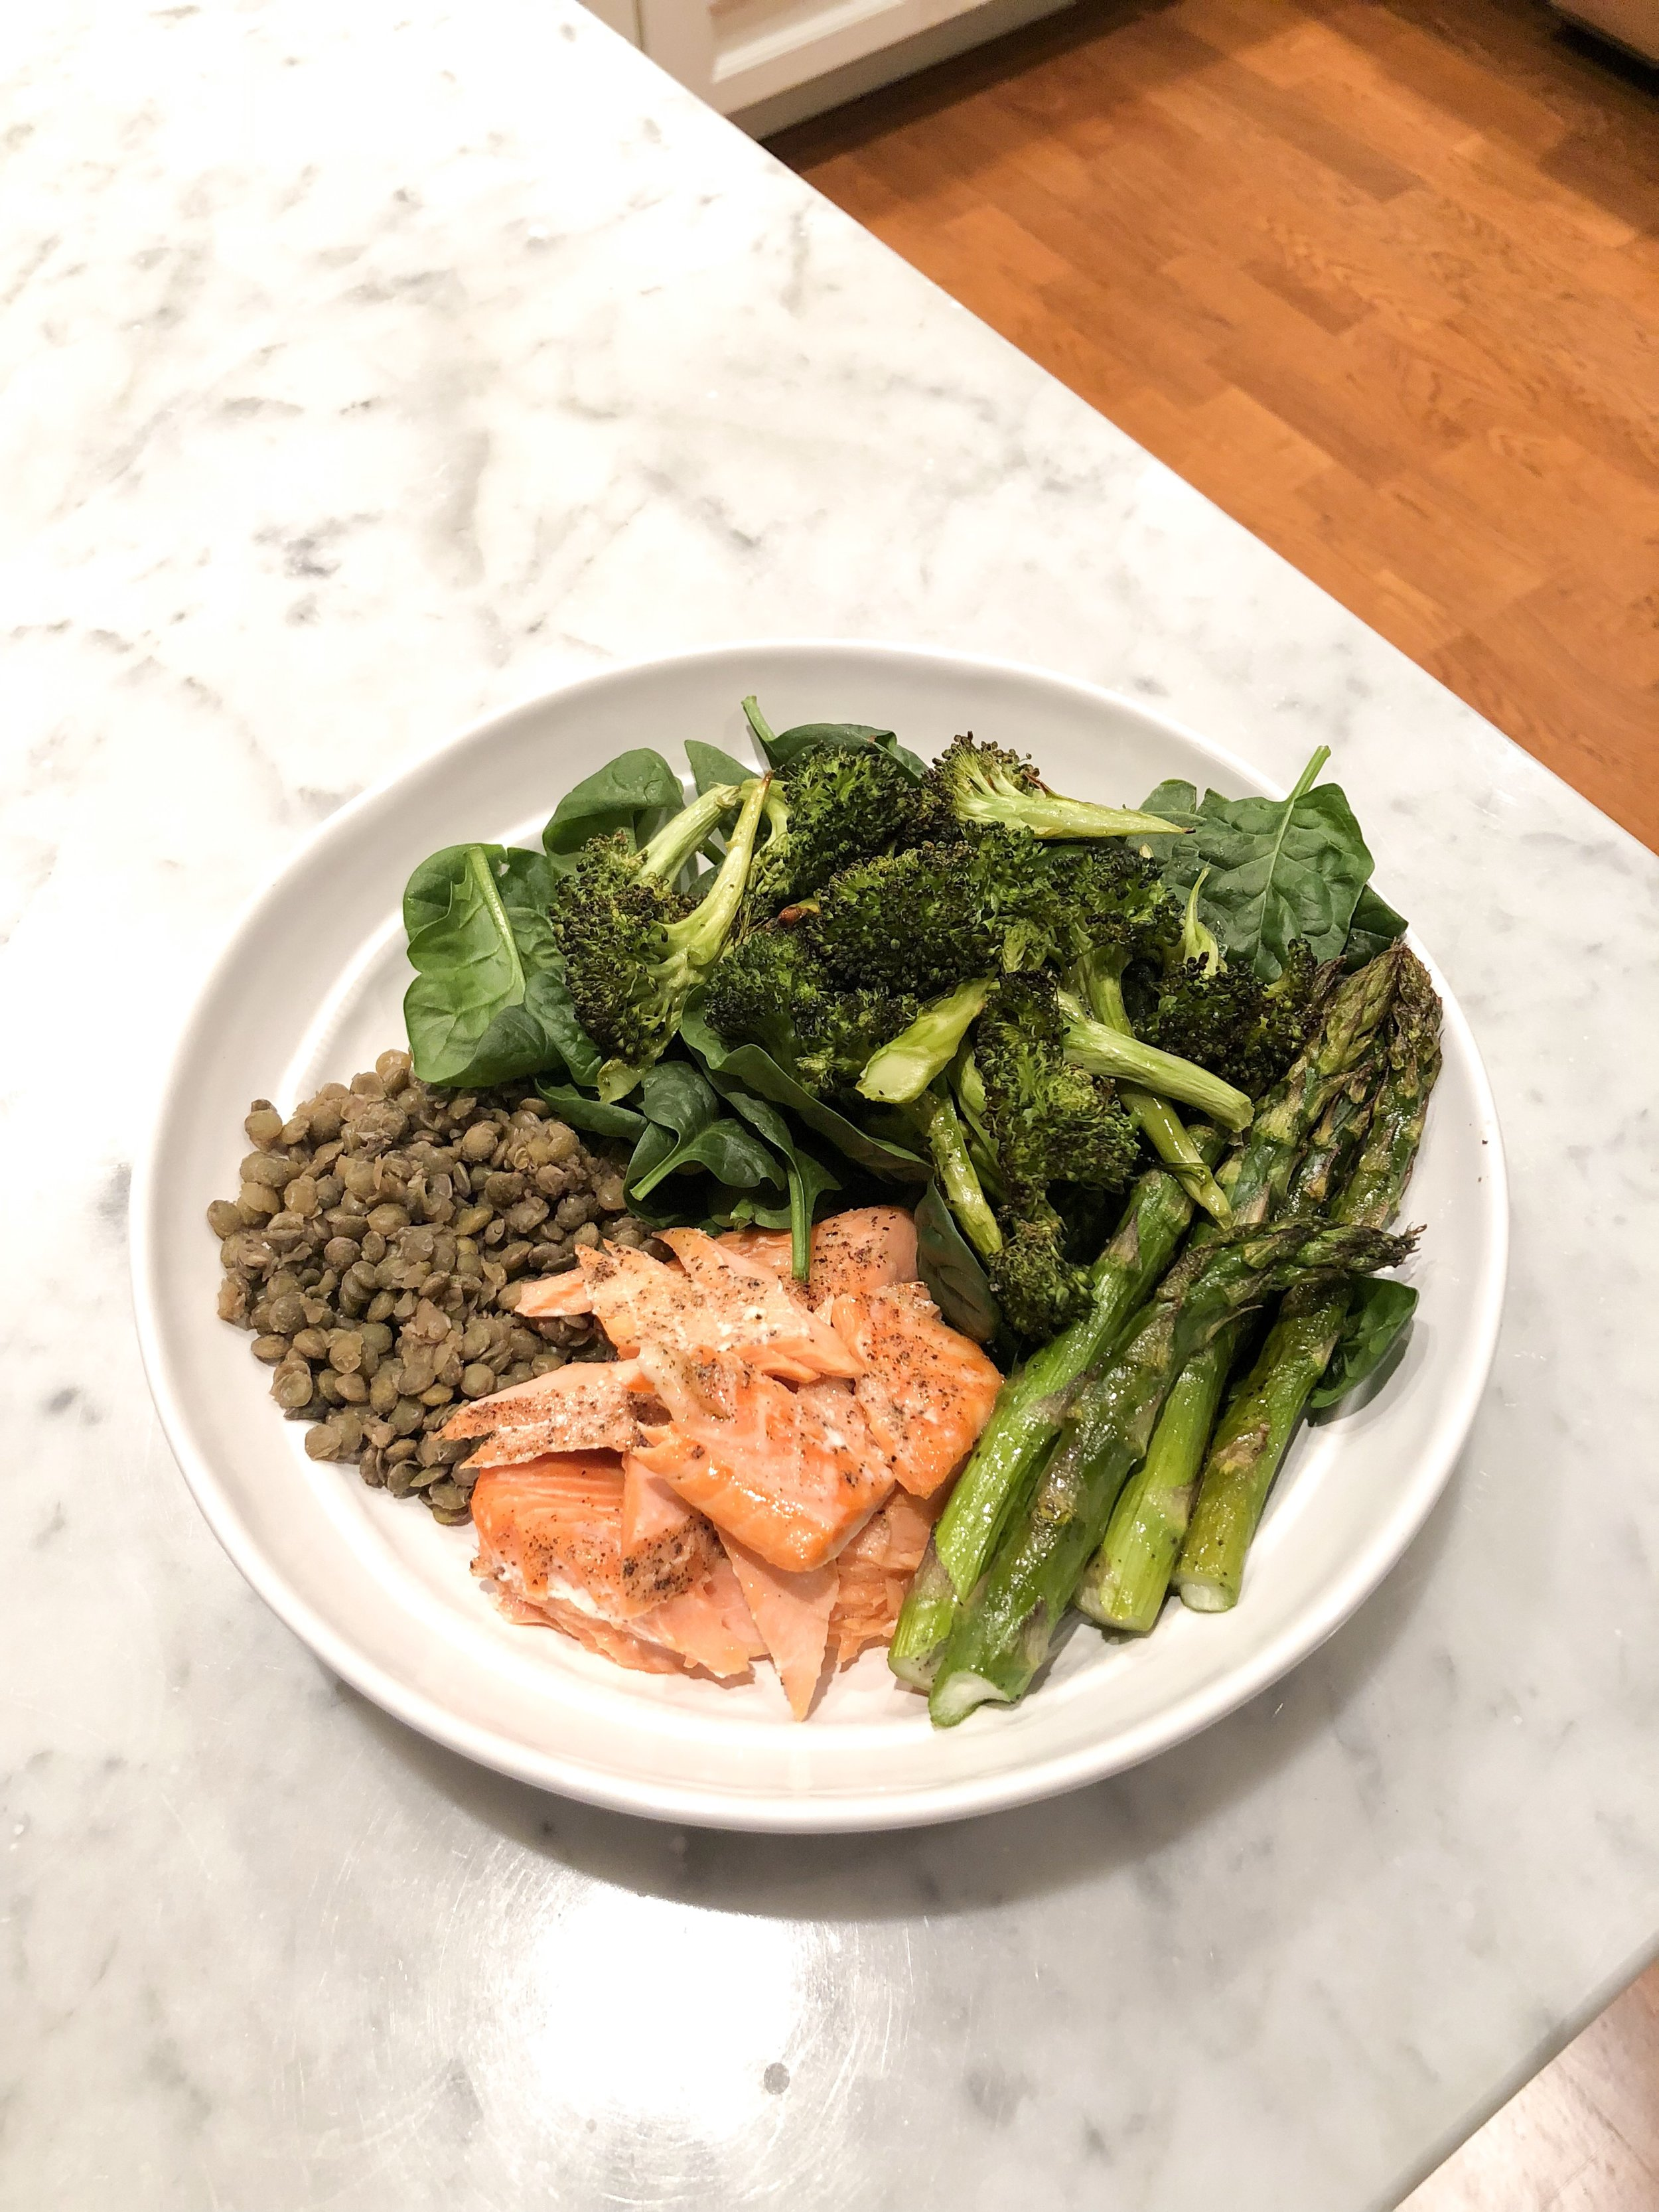 Salmon, Lentils, & Roasted Veggies - I never meal prep my broccoli or asparagus. They take 15 minutes to cook - which just so happens to be roughly the same amount of time it takes to cook salmon. Add a bed of spinach and some meal prep lentils and it's a perfectly balanced plate.Also - have to practice what I preach - notice that half the plate is green!